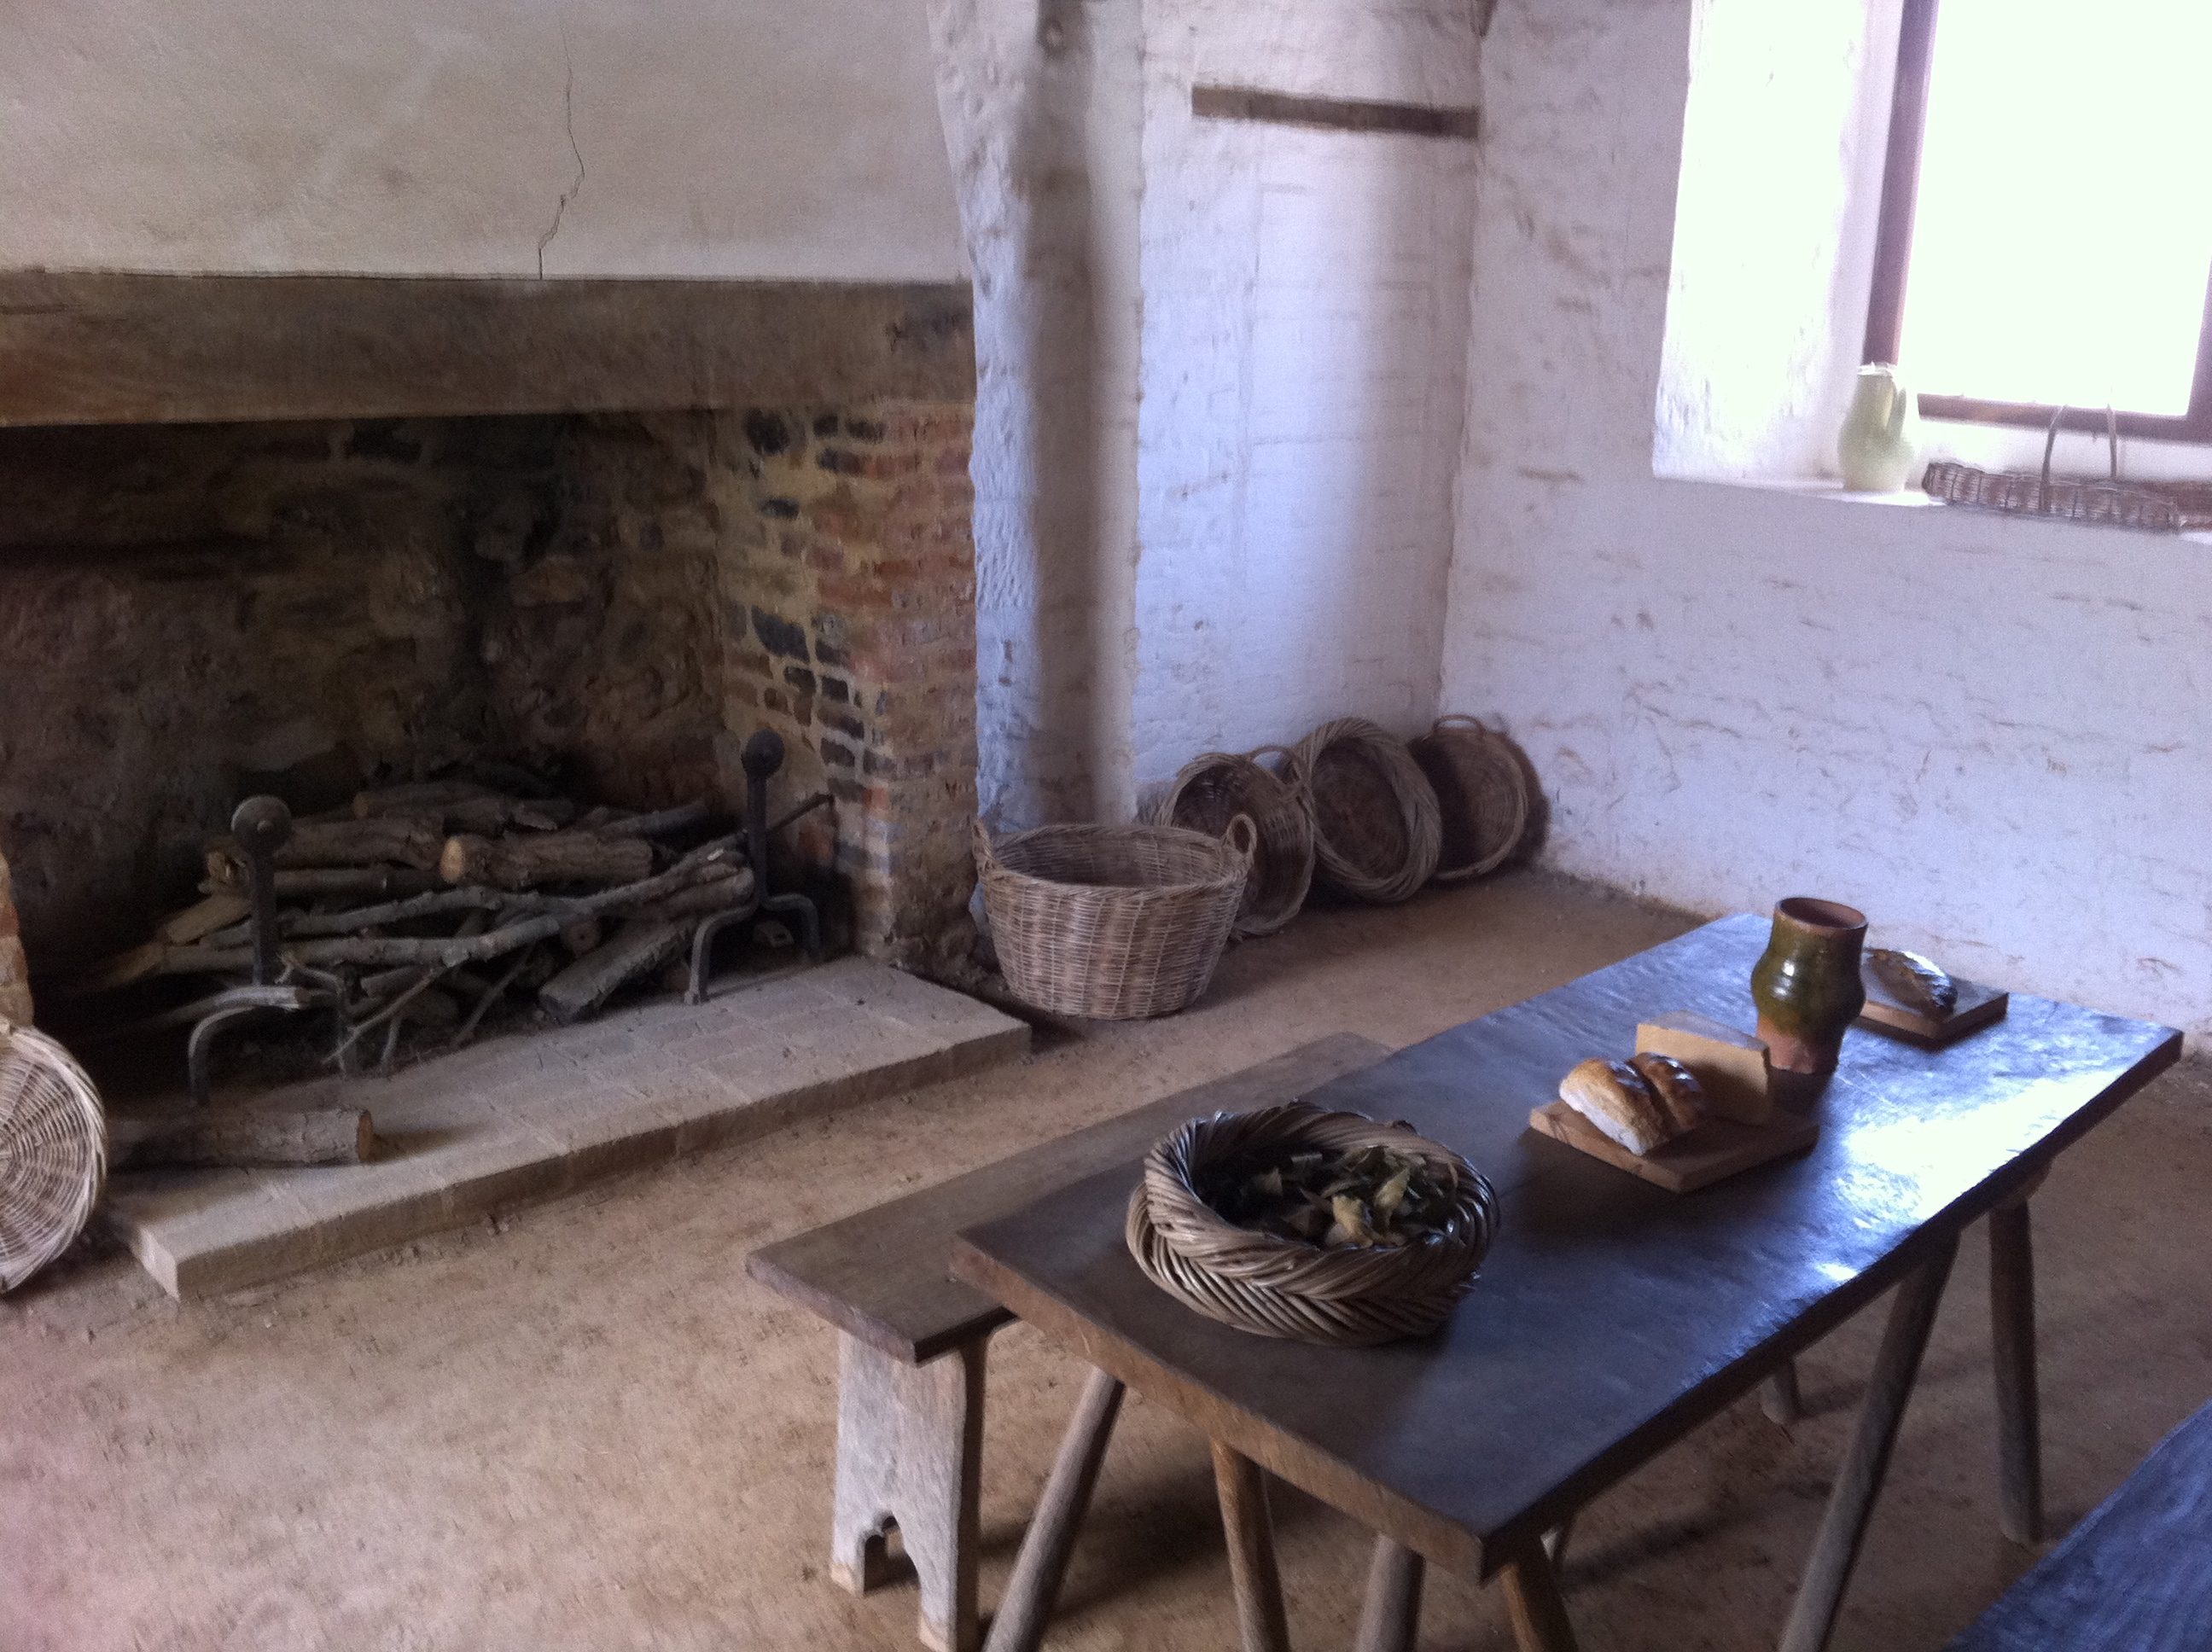 On the medieval kitchen